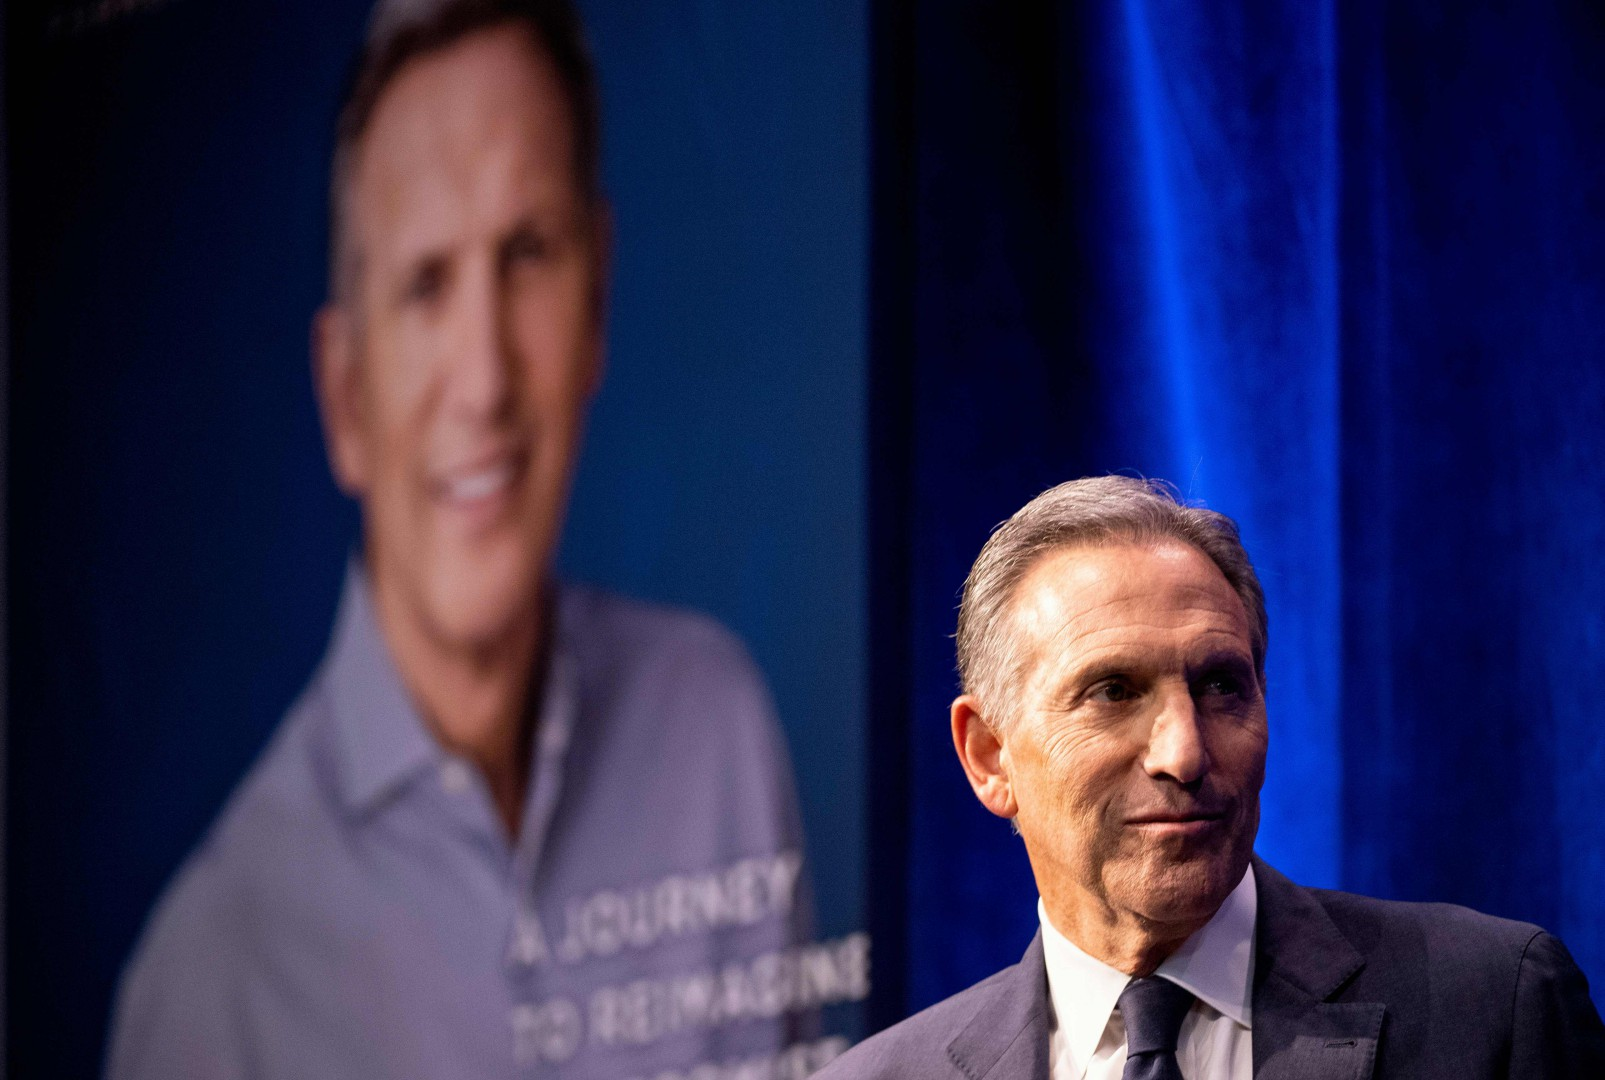 Former Chairman and CEO of Starbucks, Howard Schultz, speaks during the presentation of his book 'From The Ground Up' on January 28, 2019 in New York City. (Photo by Johannes EISELE / AFP)